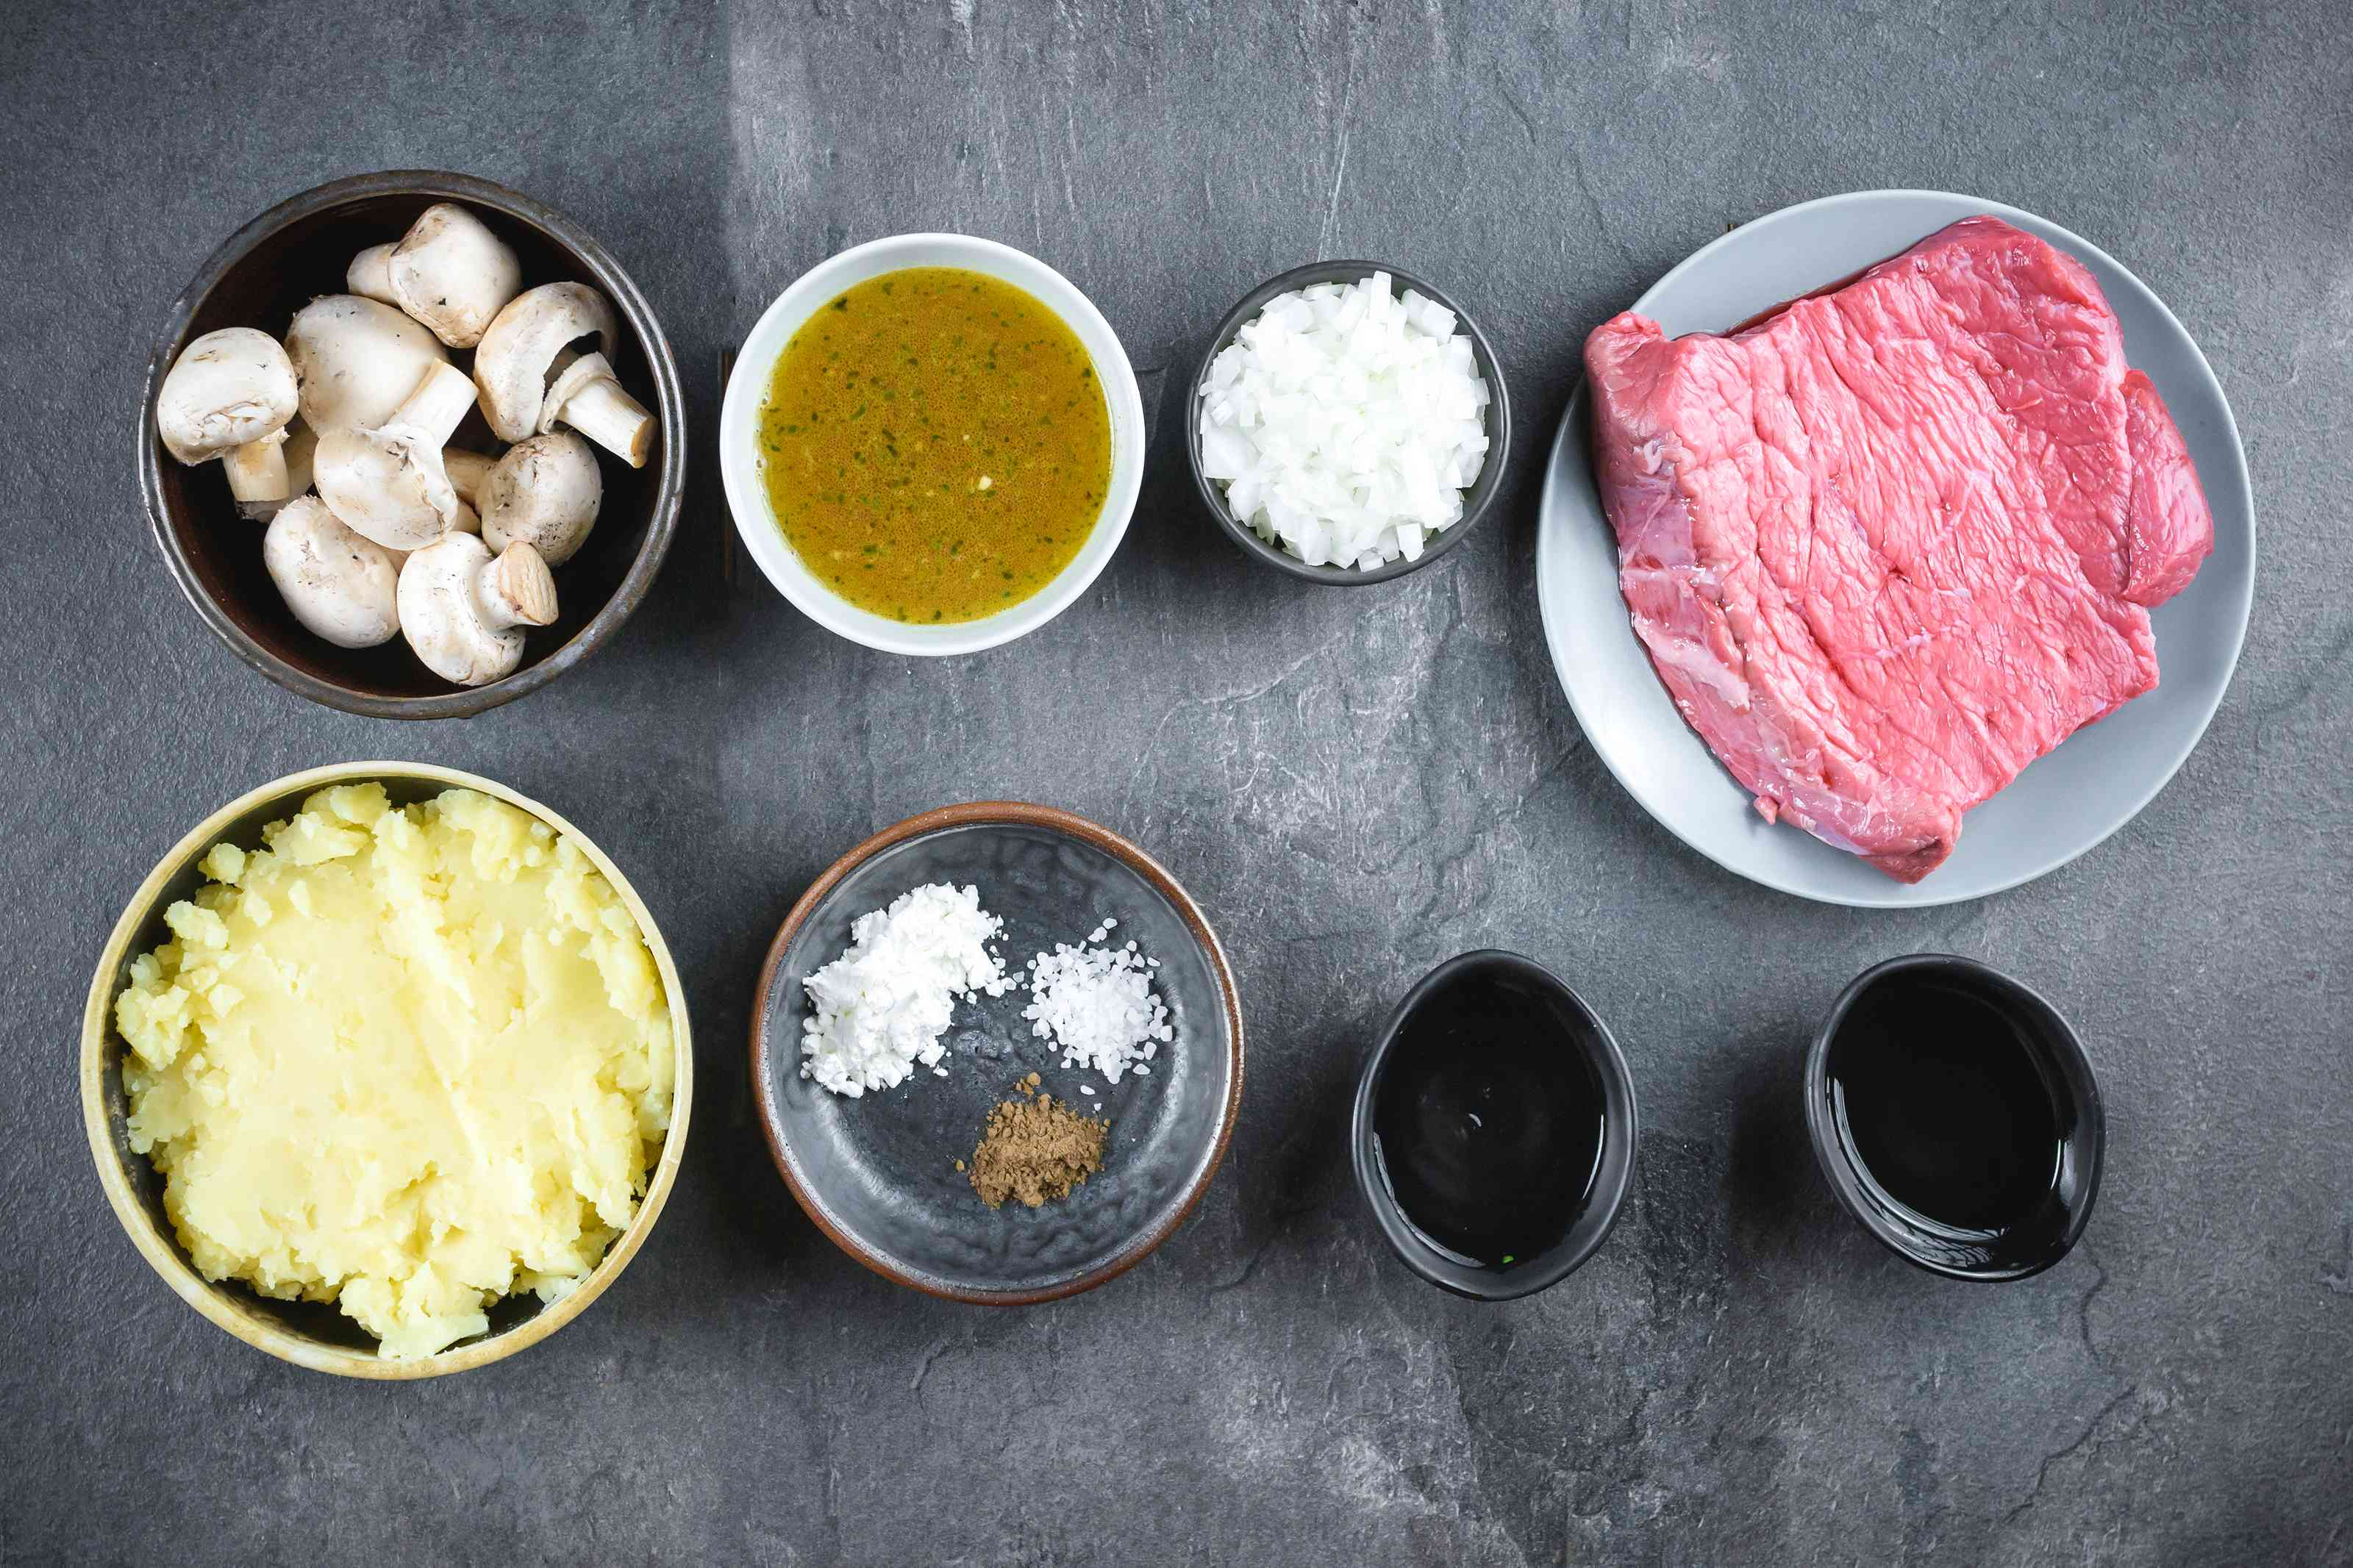 Ingredients for beef tips